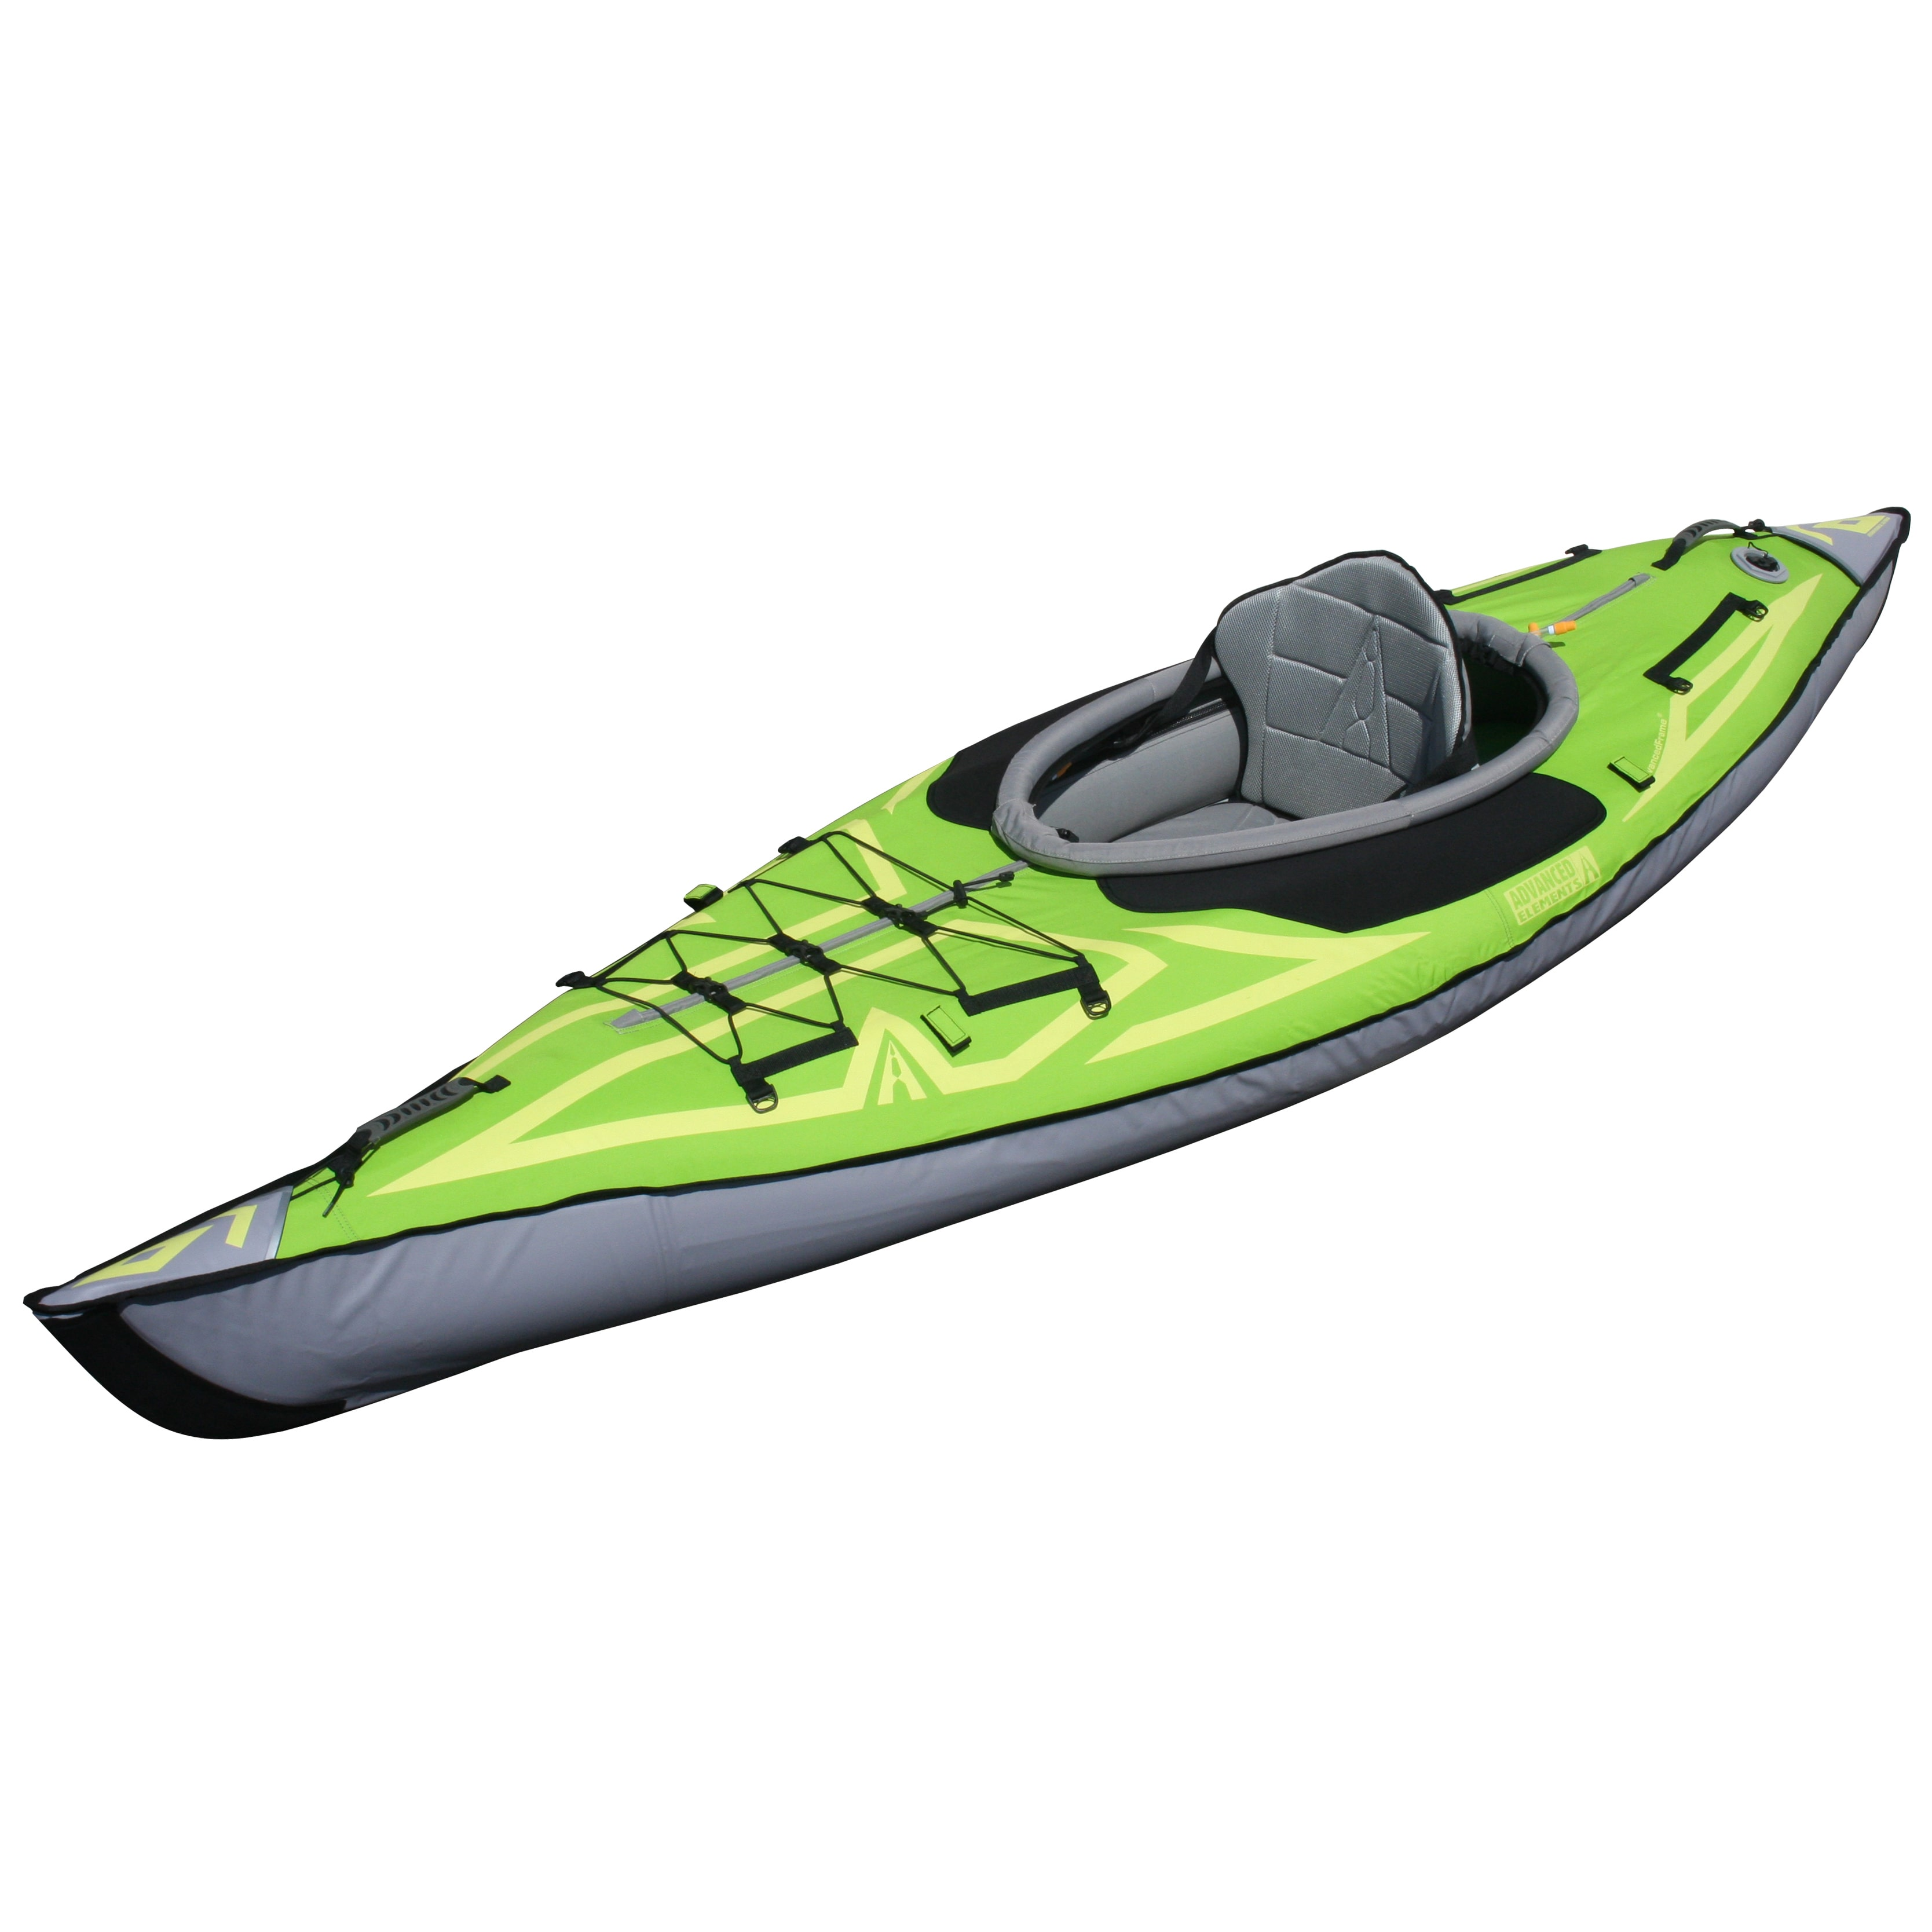 Advancedframe Kayak Green - ADVANCED ELEMENTS - AE1012-G